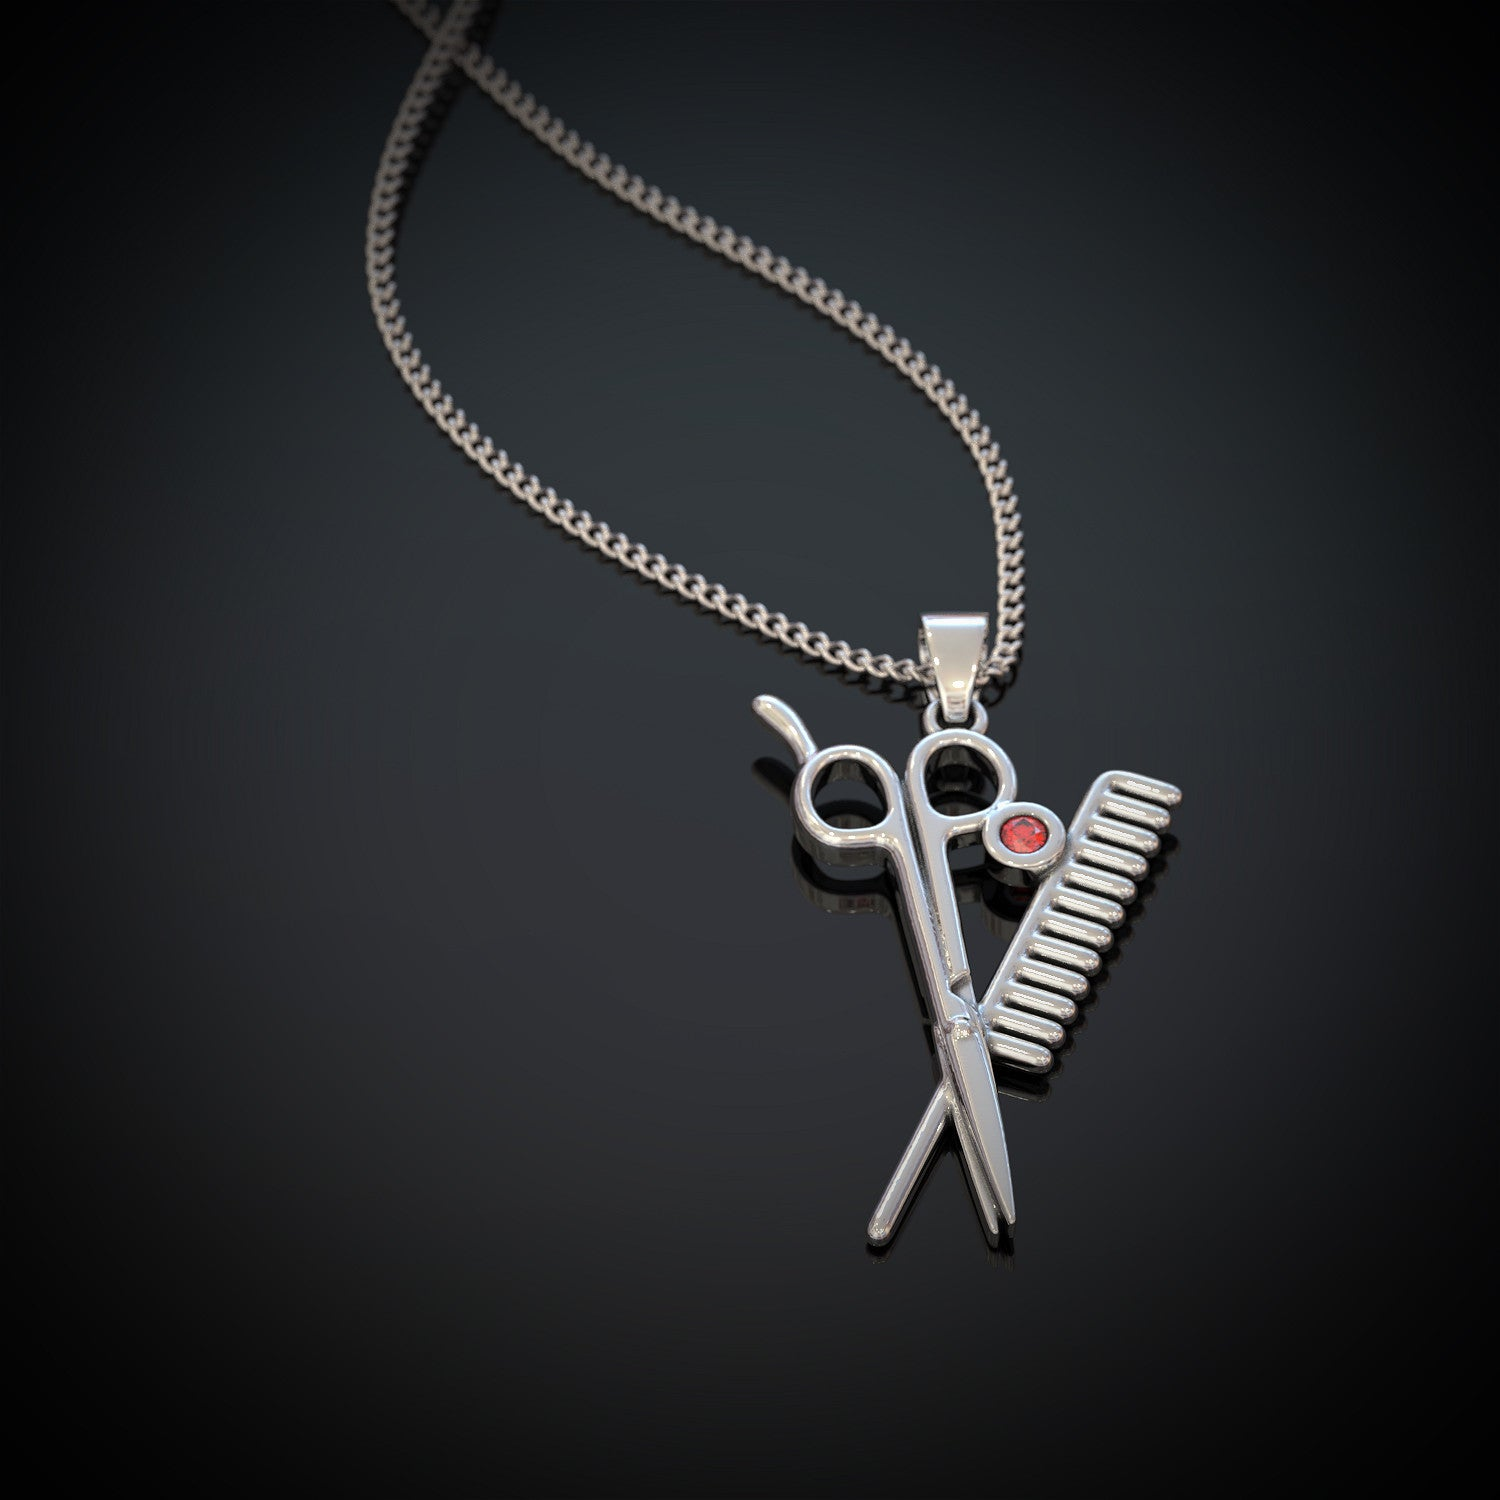 Scissor Comb Necklace